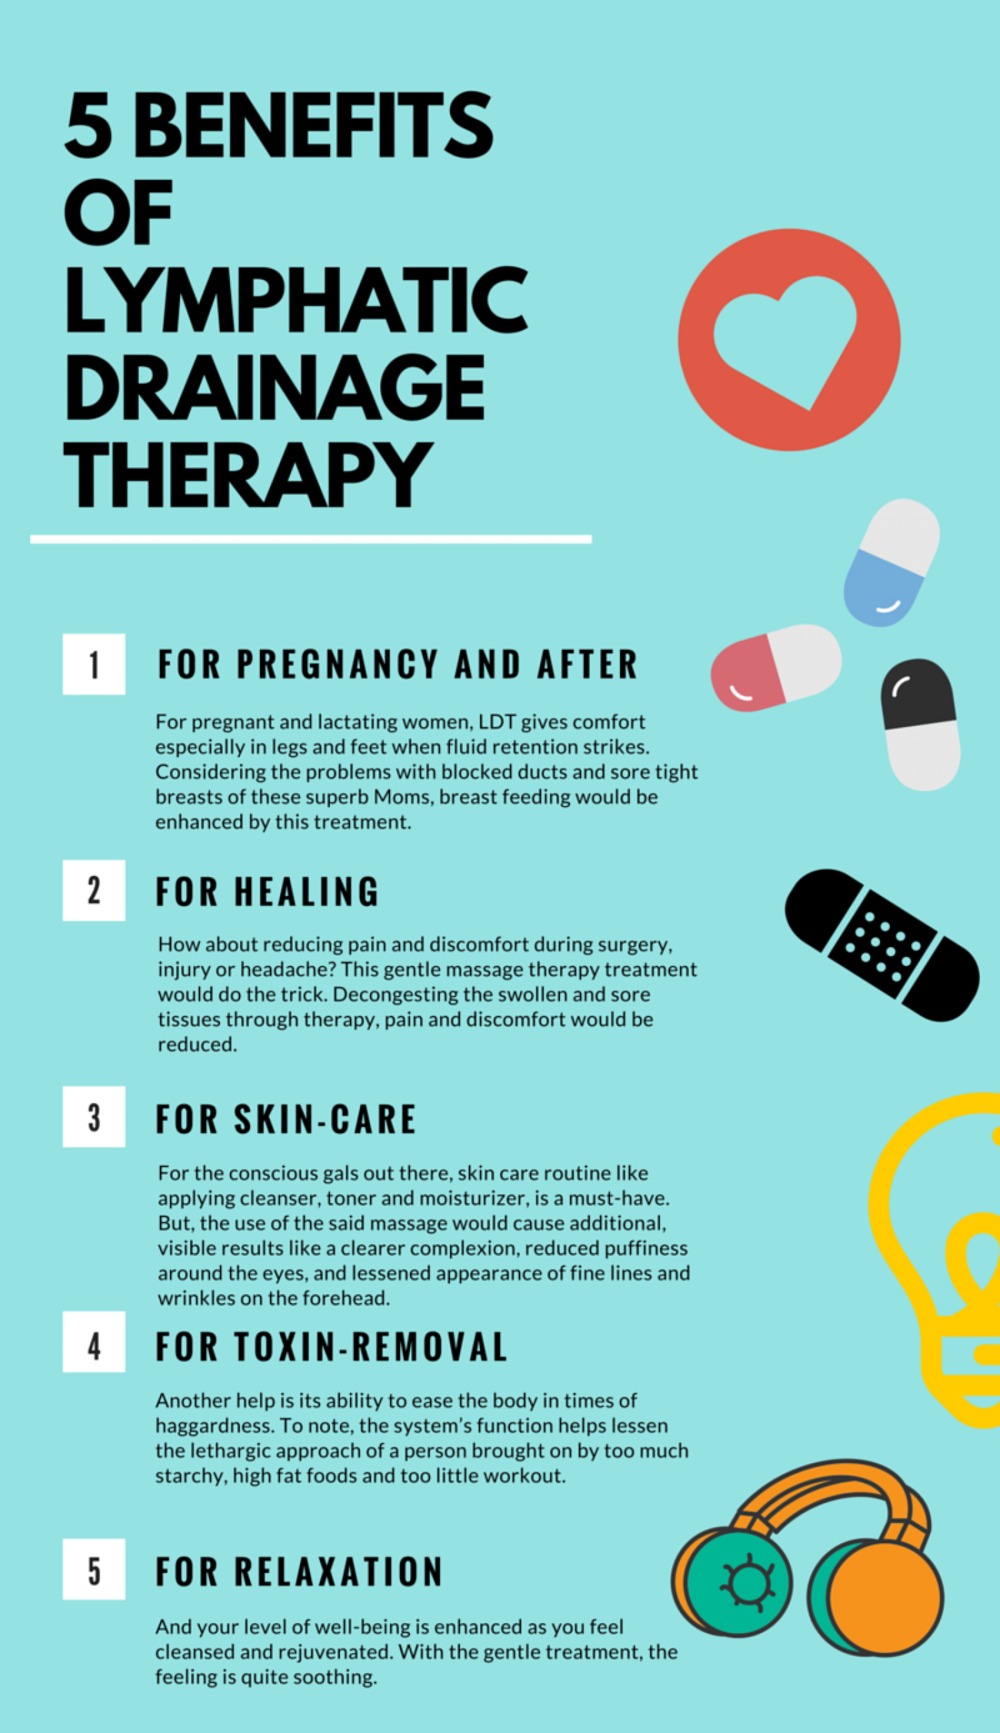 5-benefits-of-lymphatic-drainage-therapy_5662c7252b275_w1500.png